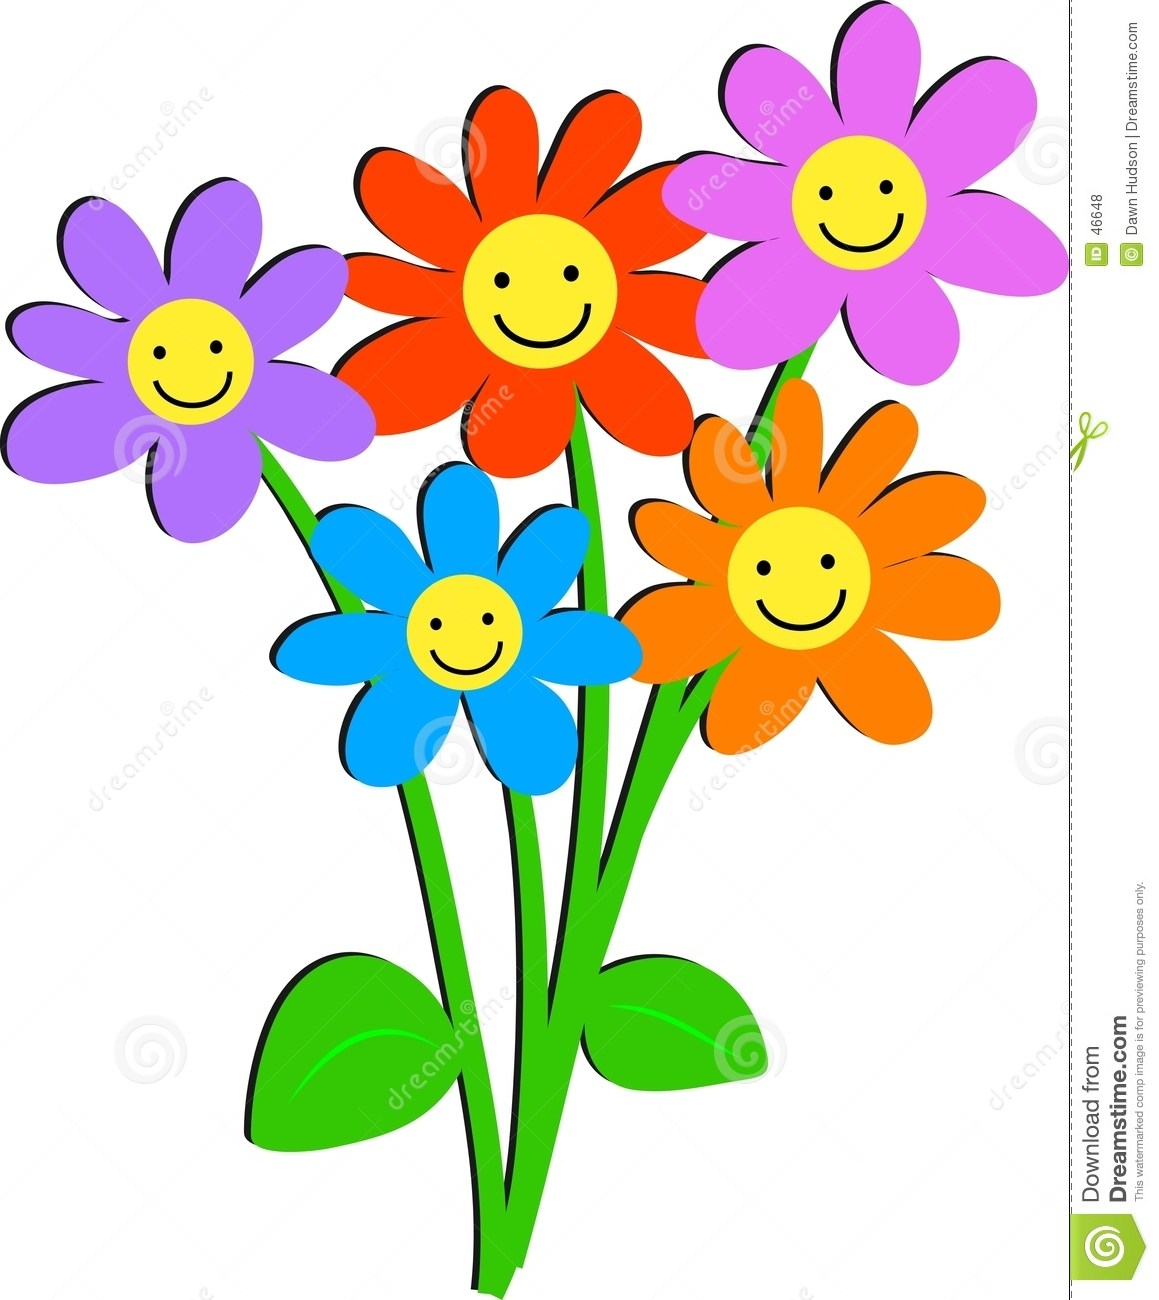 Flowers with faces clipart. Portal